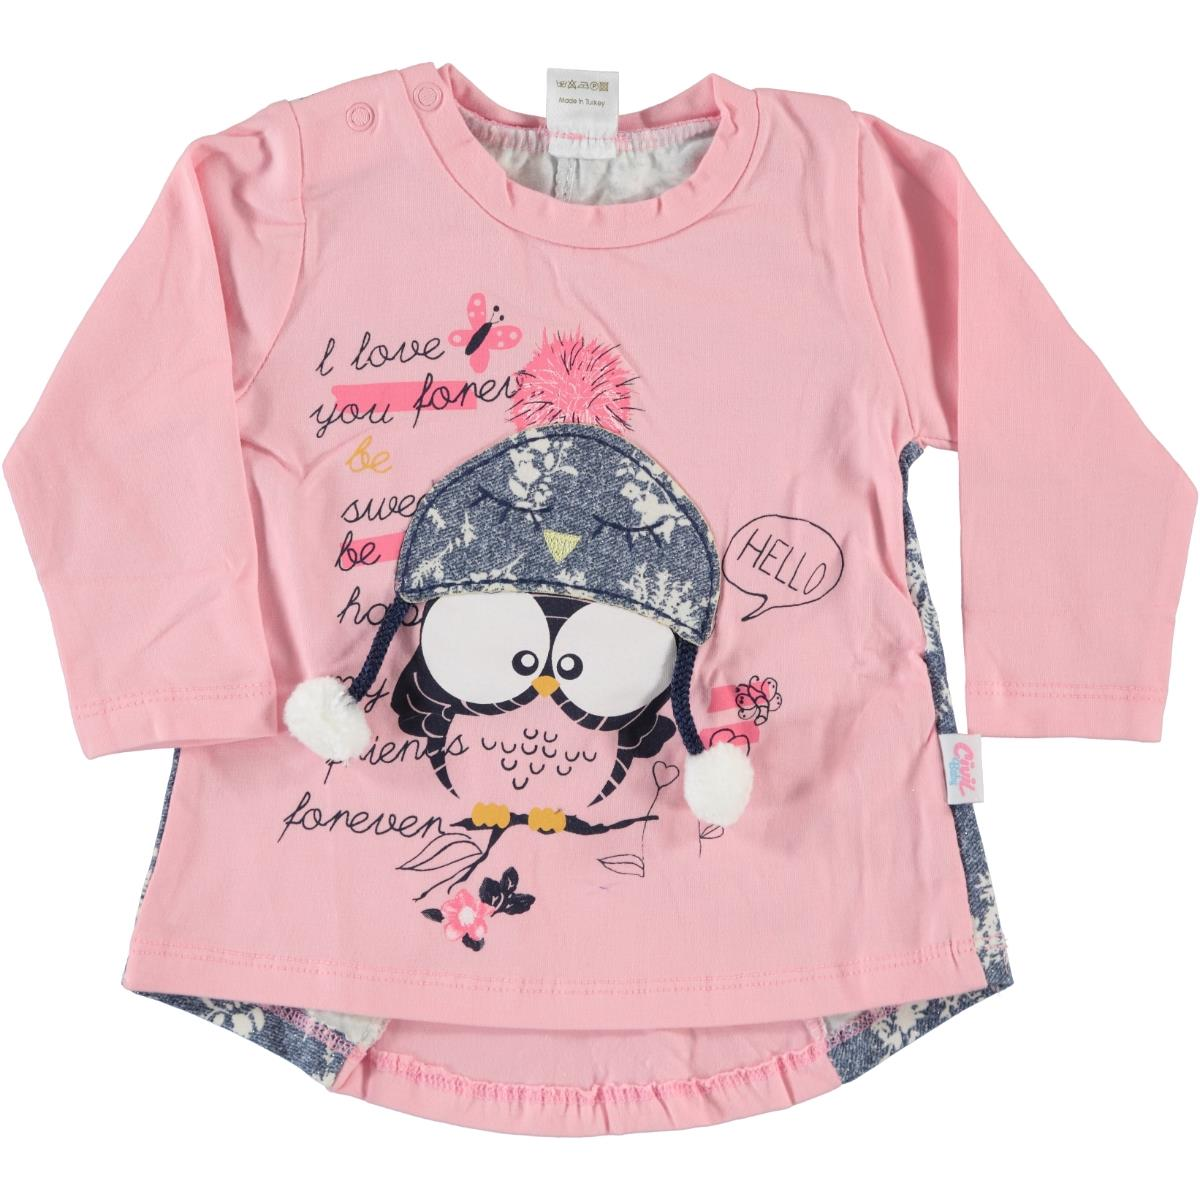 Civil Baby Penye Sweatshirt 6-24 ay